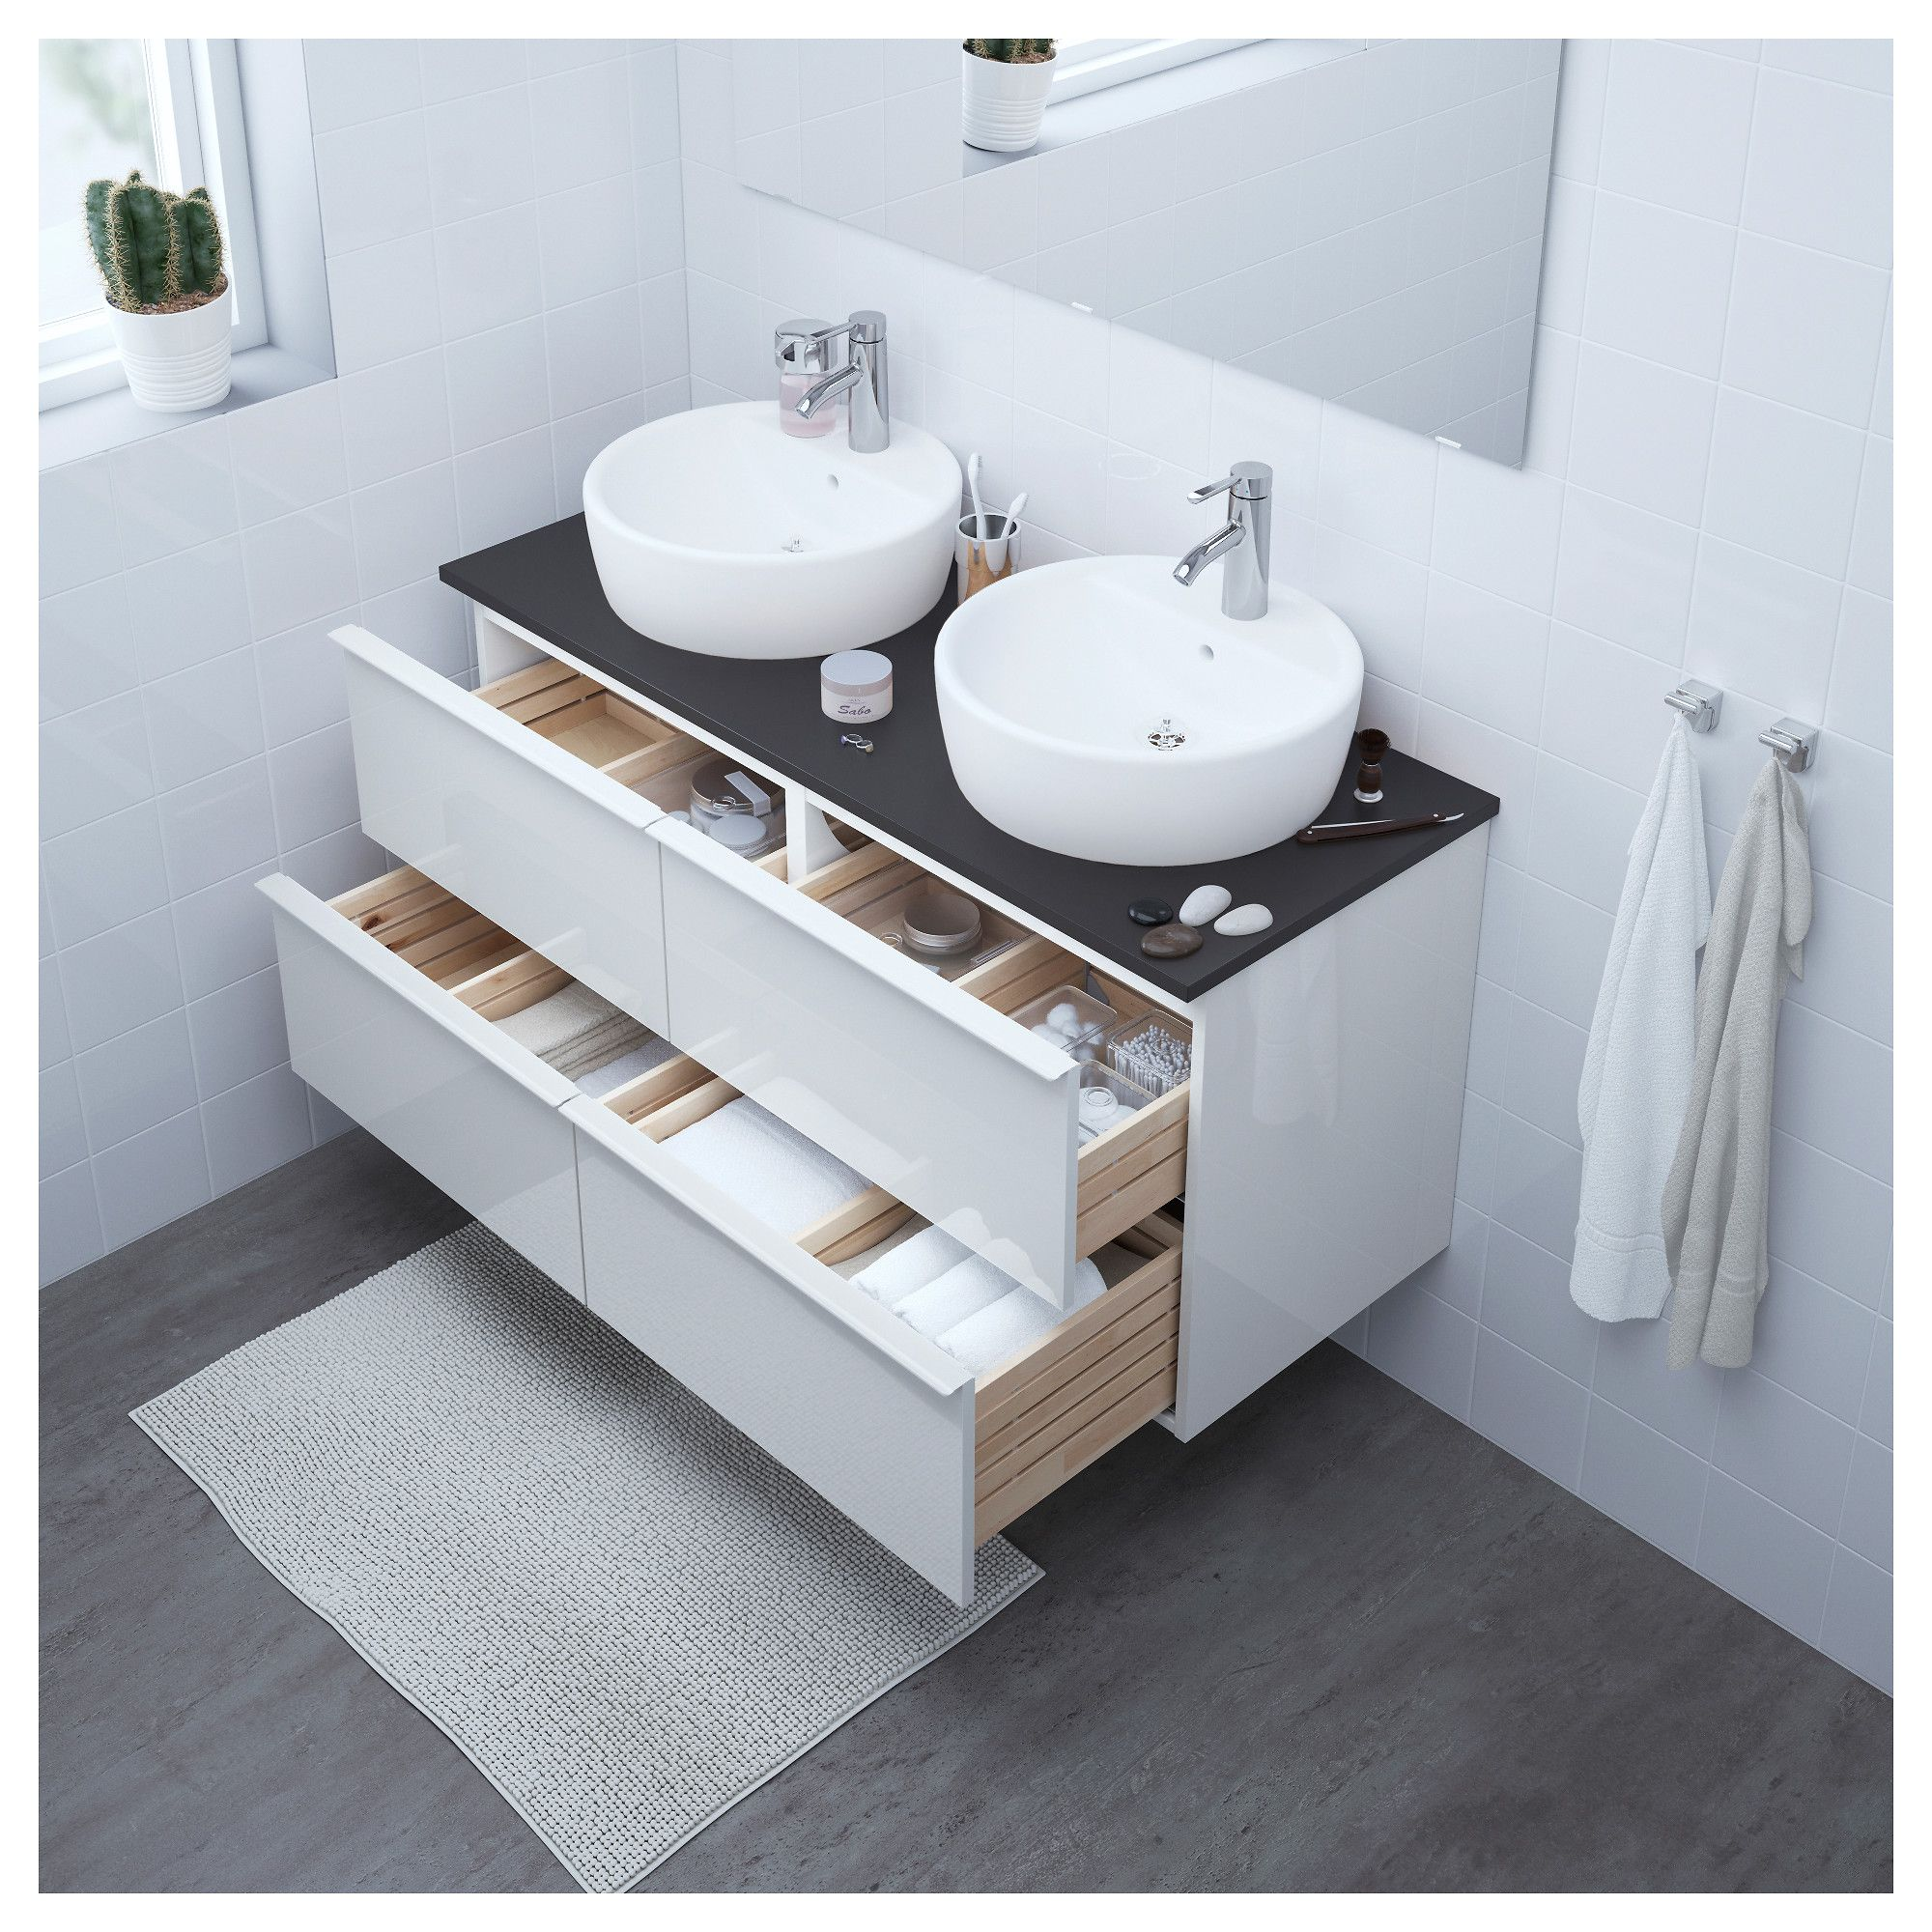 Furniture and Home Furnishings | Ikea sinks, Bathroom sink ...